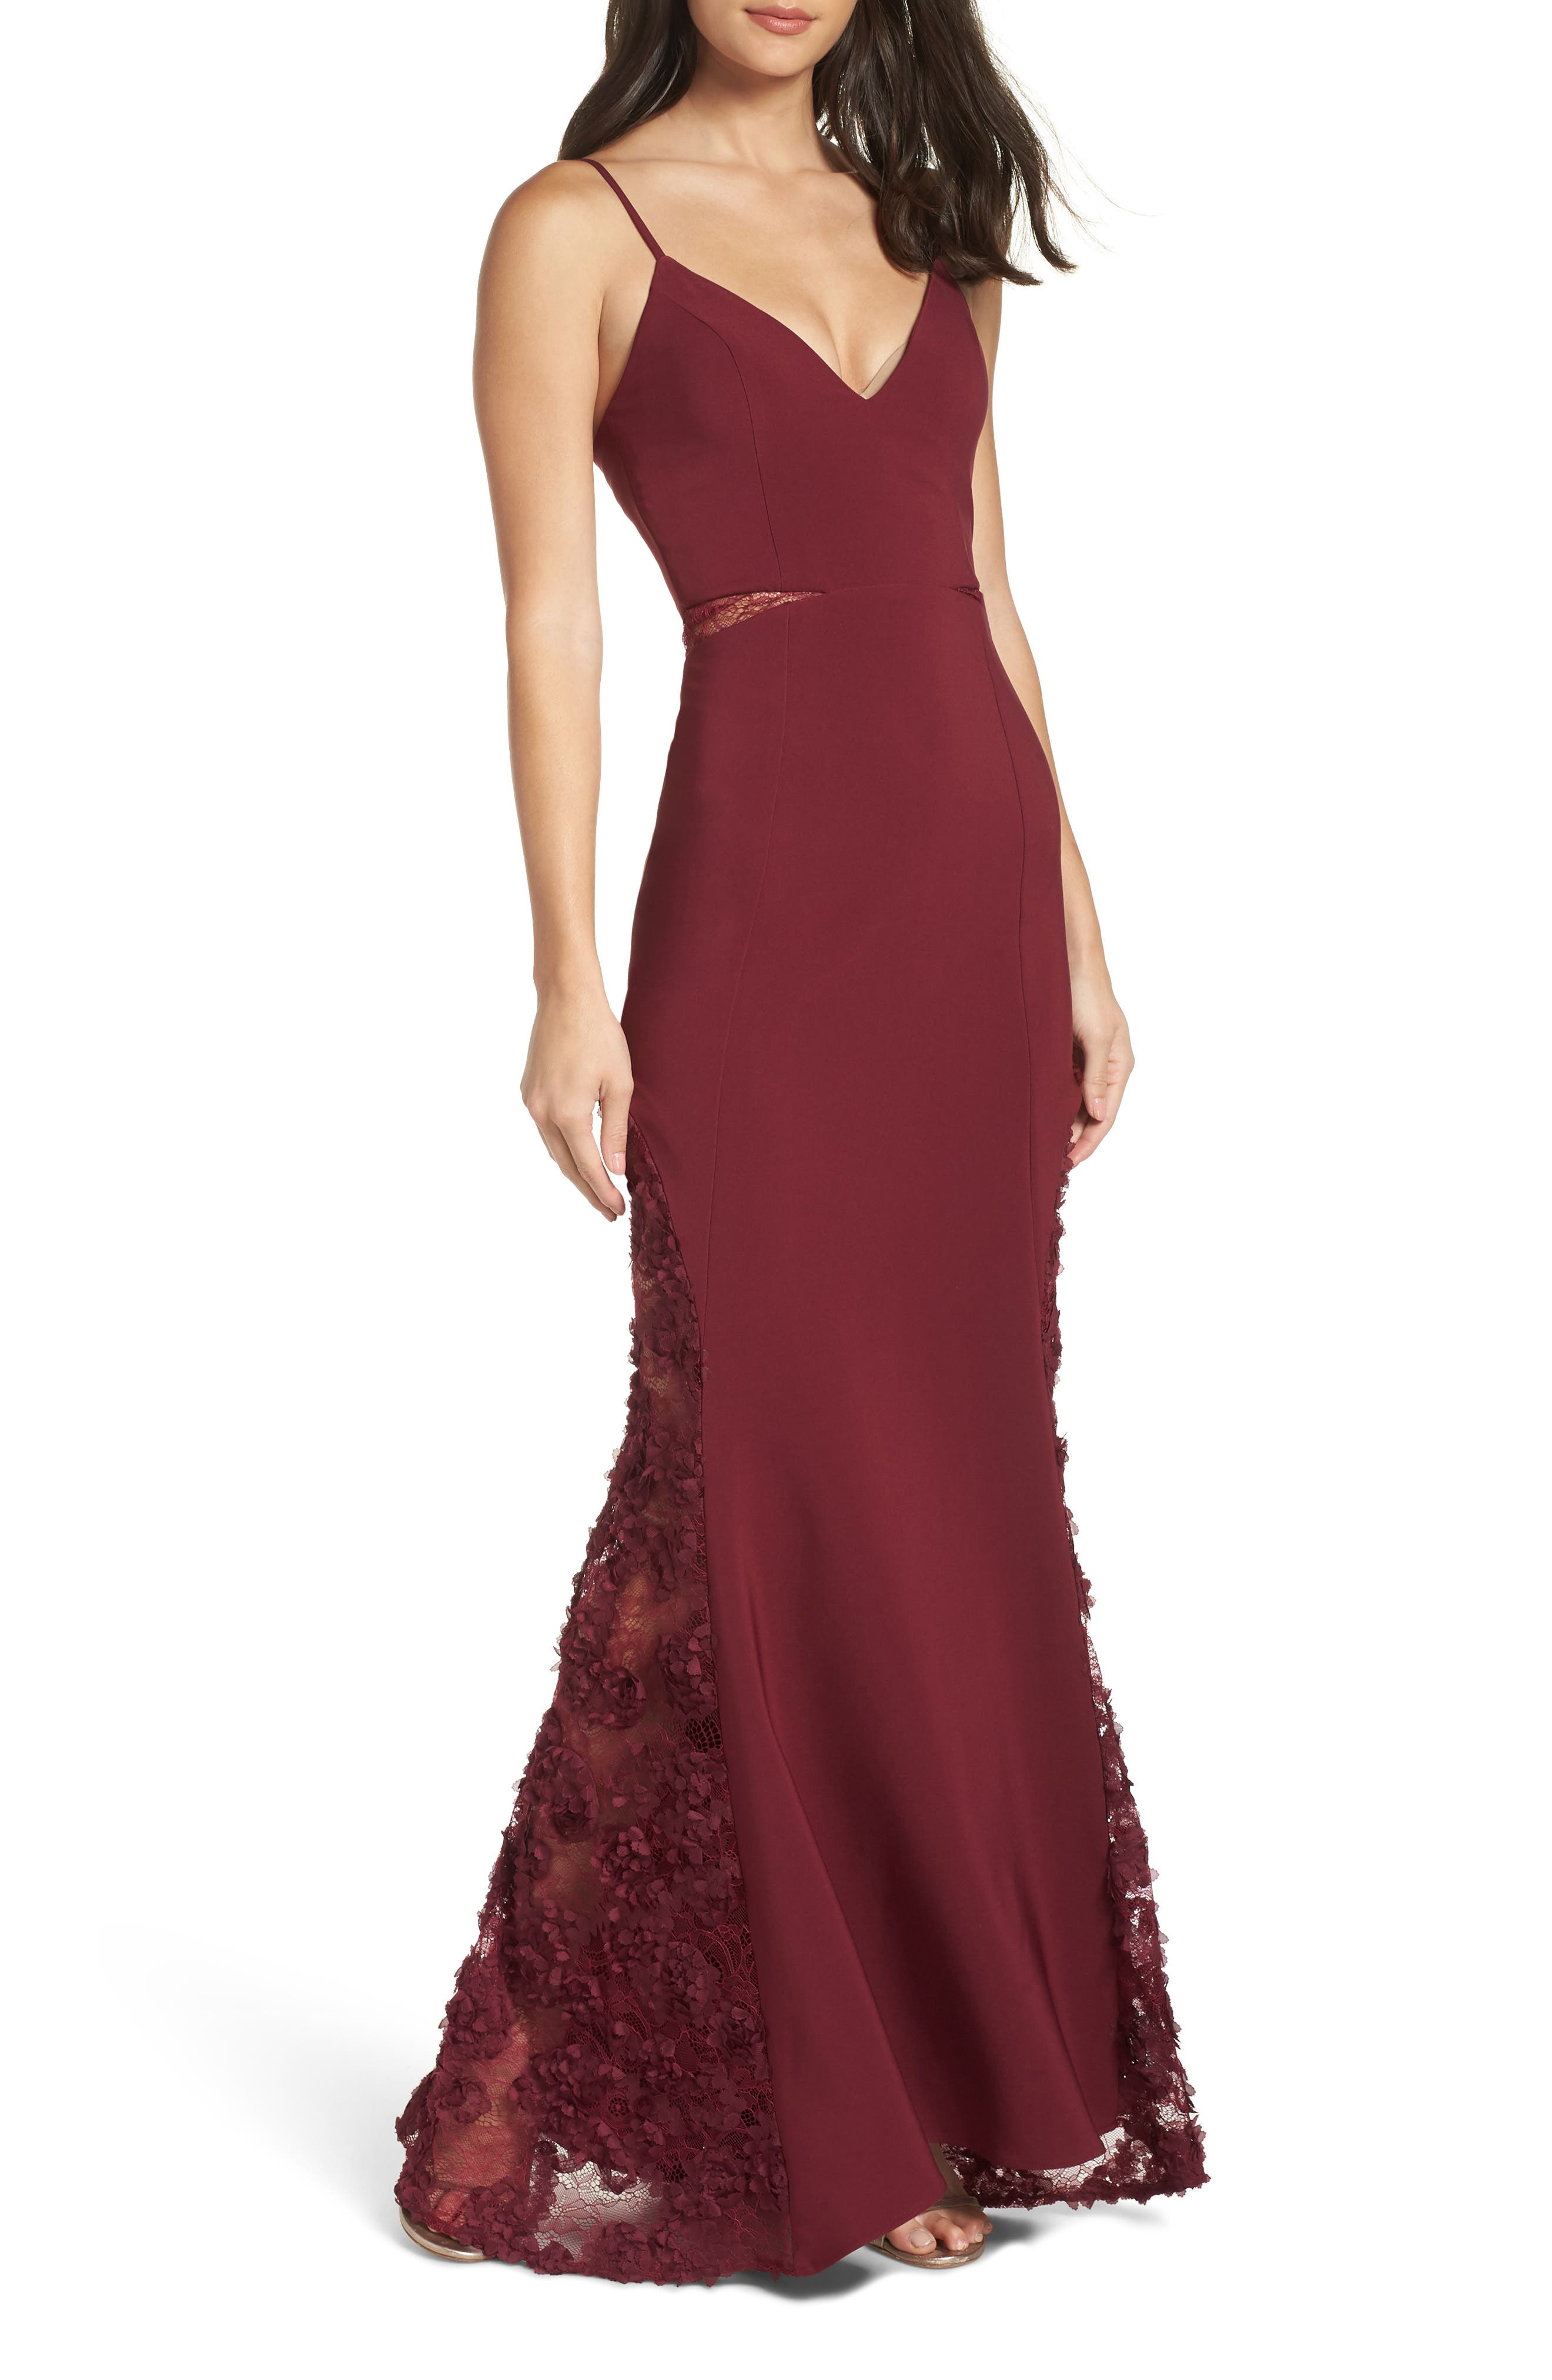 Maria Bianca Nero Shannon Lace Inset Gown, Red